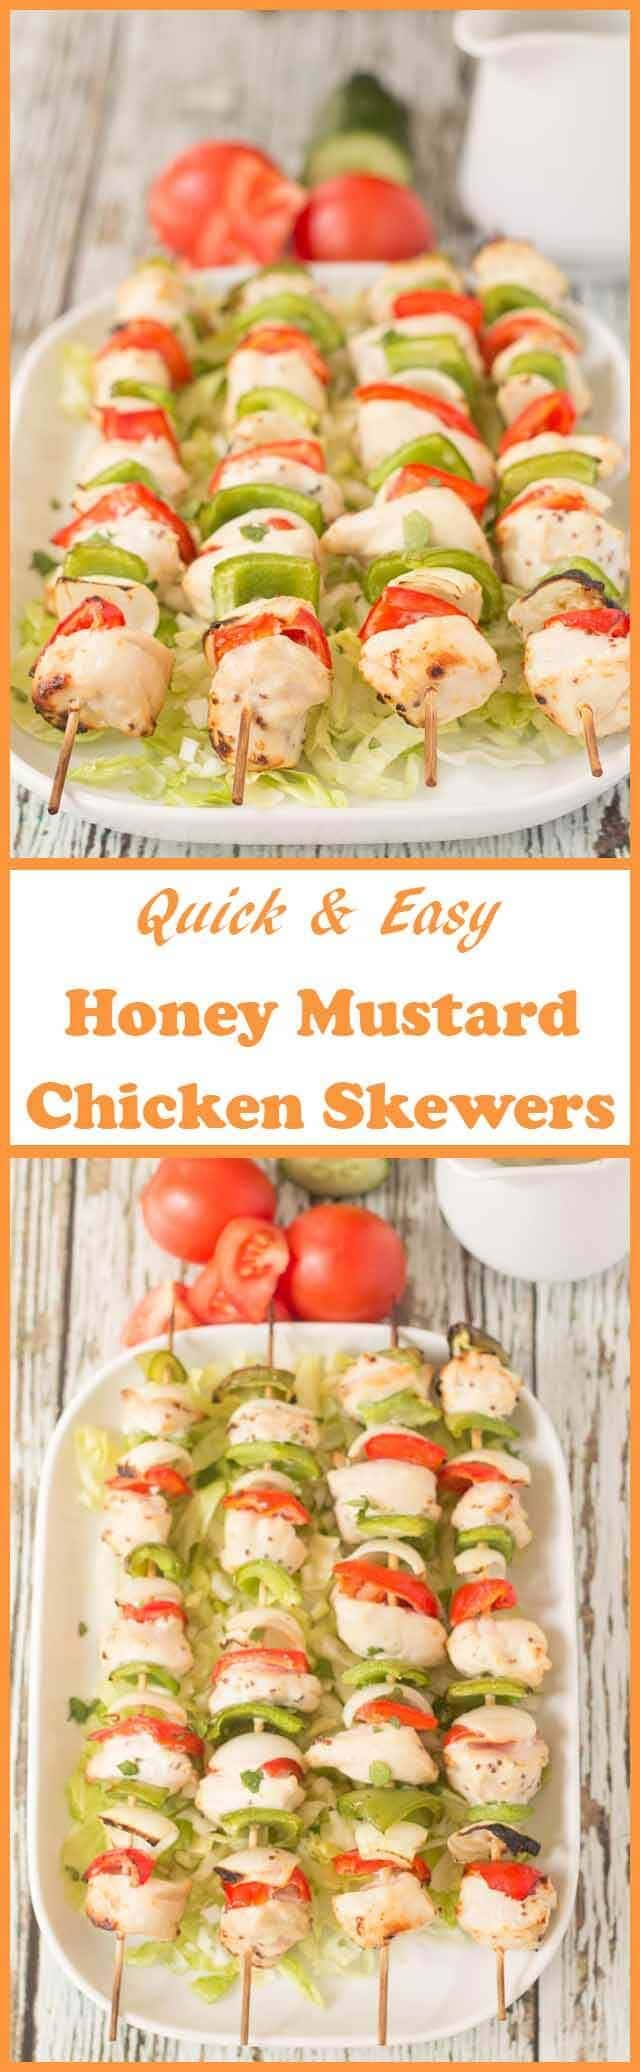 These honey mustard chicken skewers are so easy to make and tasty too. They're grilled in just 25 minutes and are delicious served in wraps with a salad.